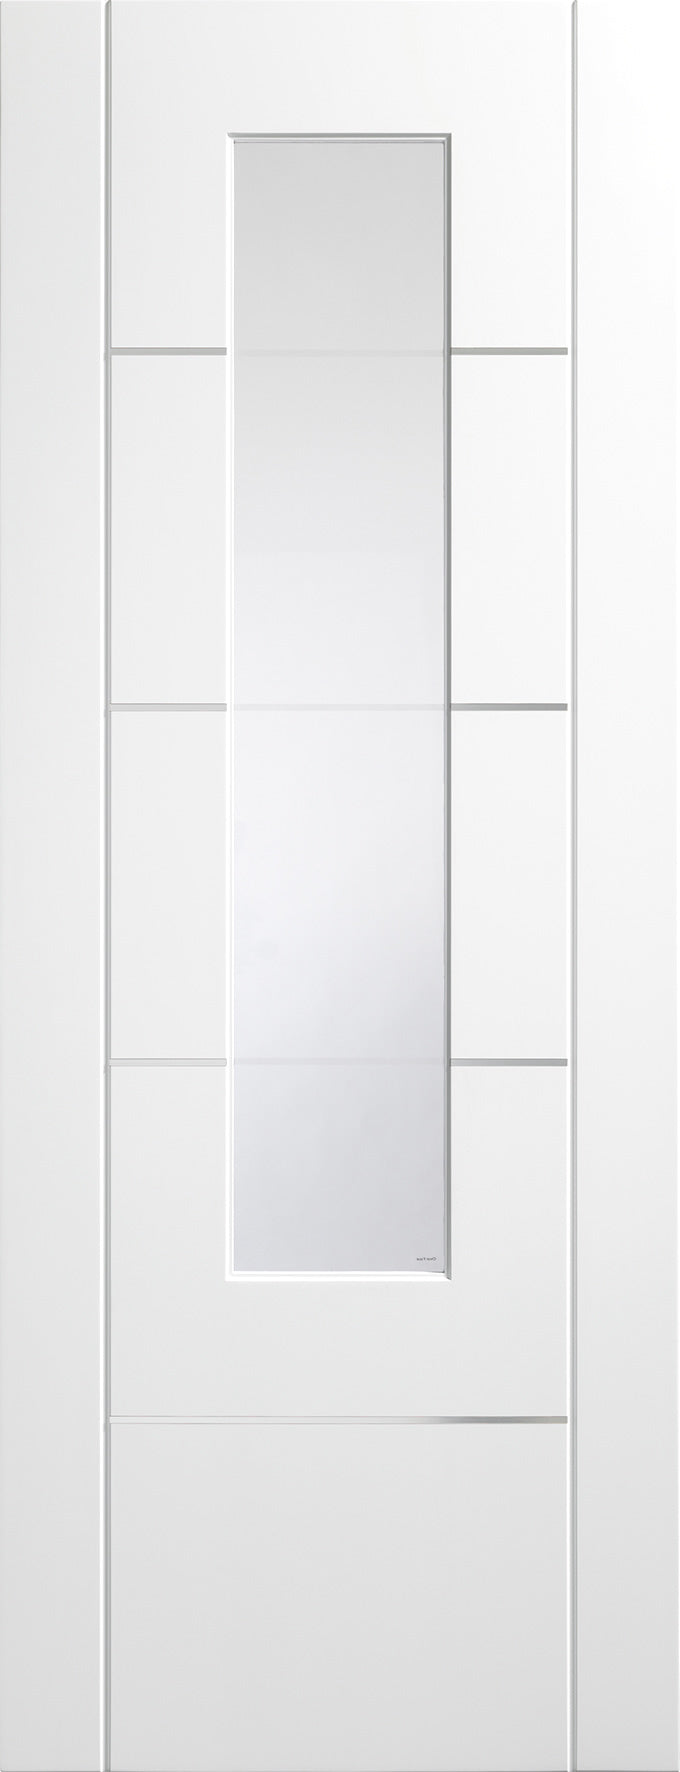 Portici prefinished white door with clear etched glass.